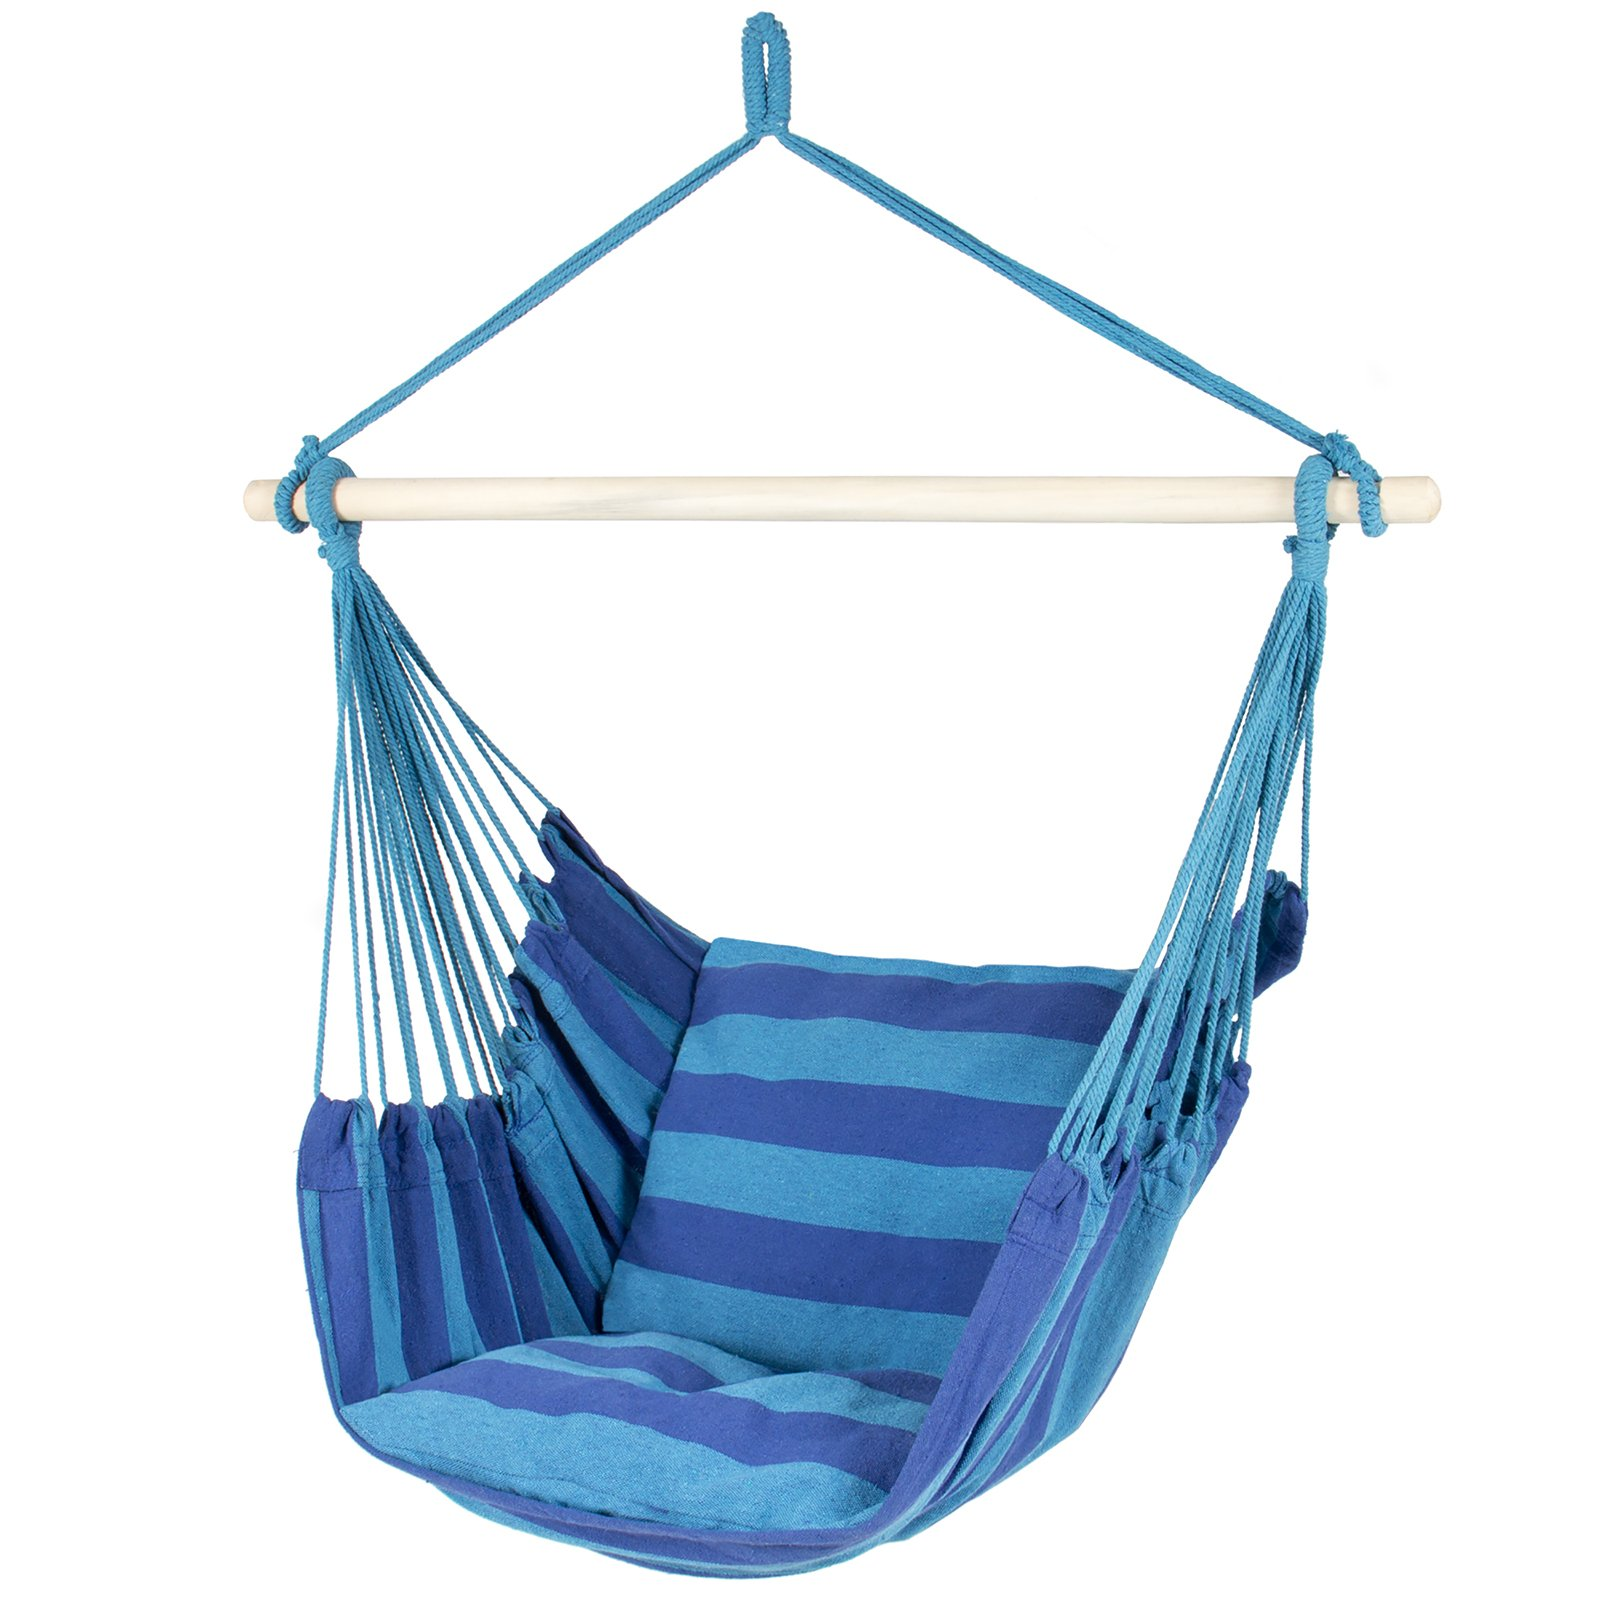 Best ChoiceProducts Hammock Hanging Rope Chair Porch Swing Seat Patio Camping Portable, Blue Stripe